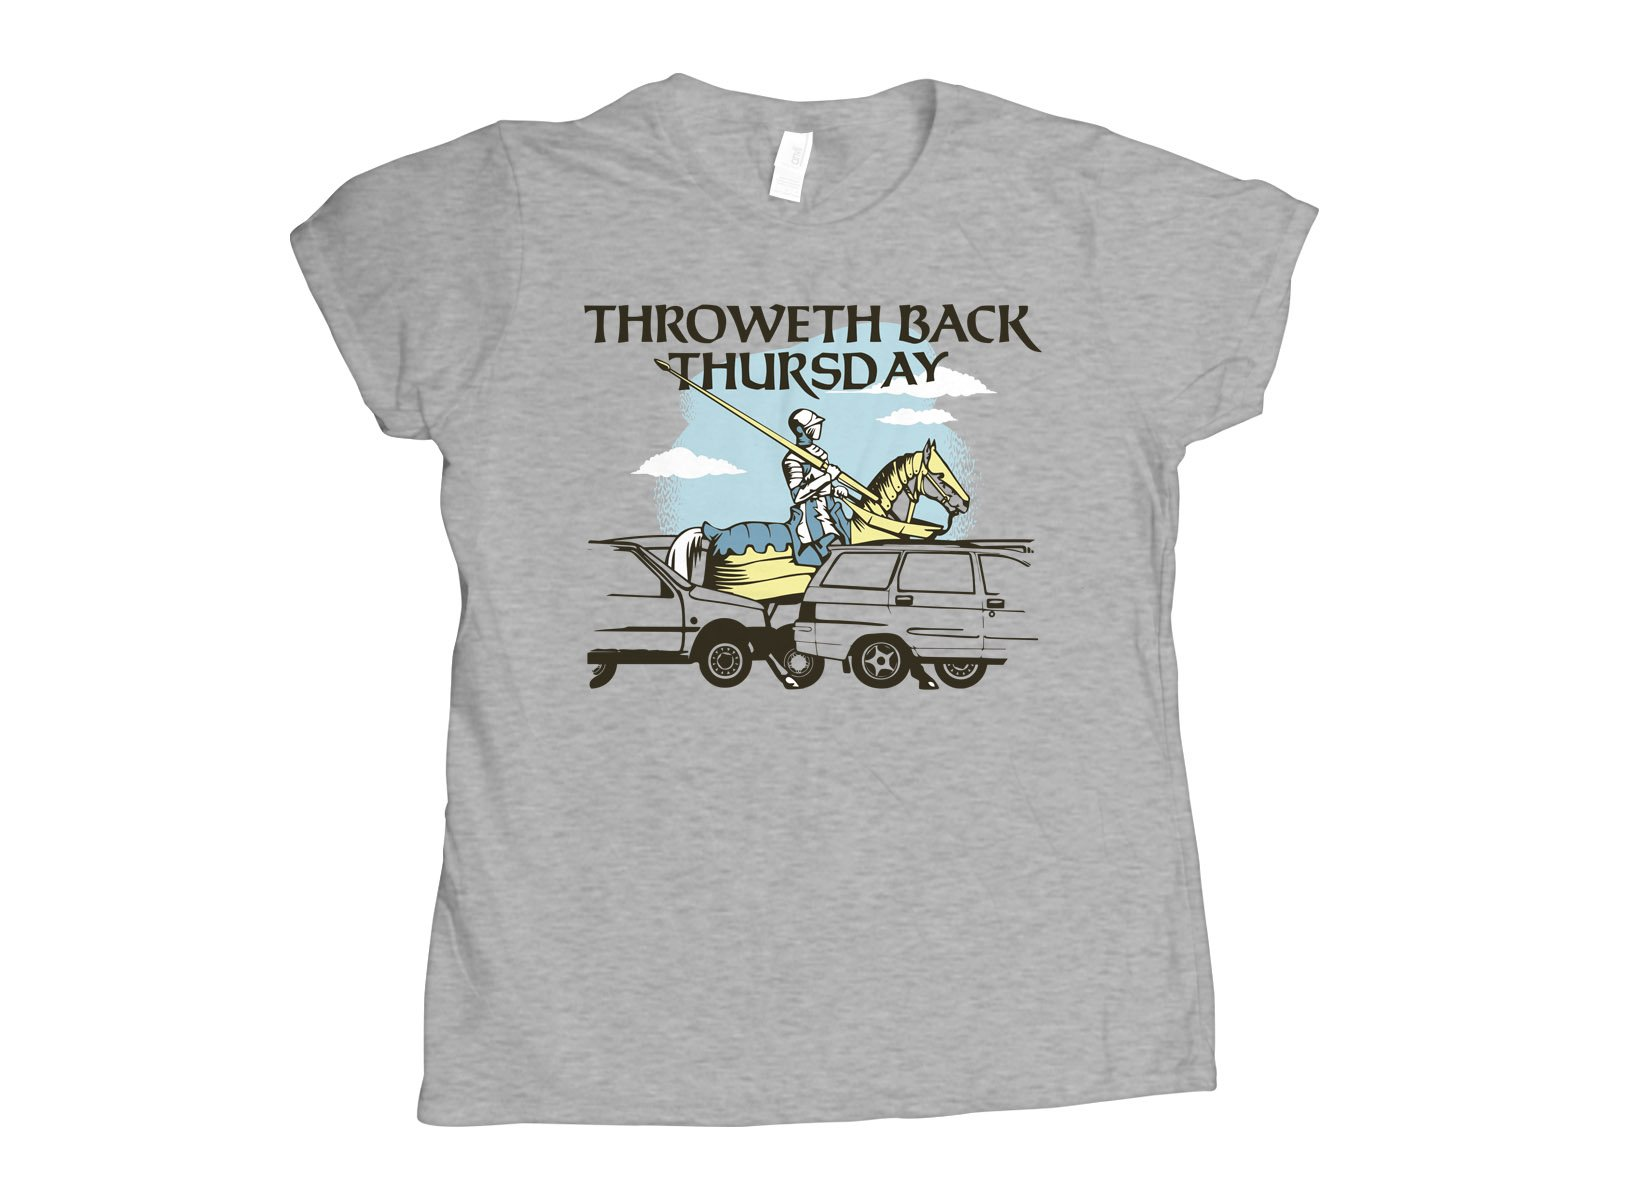 Throweth Back Thursday on Womens T-Shirt